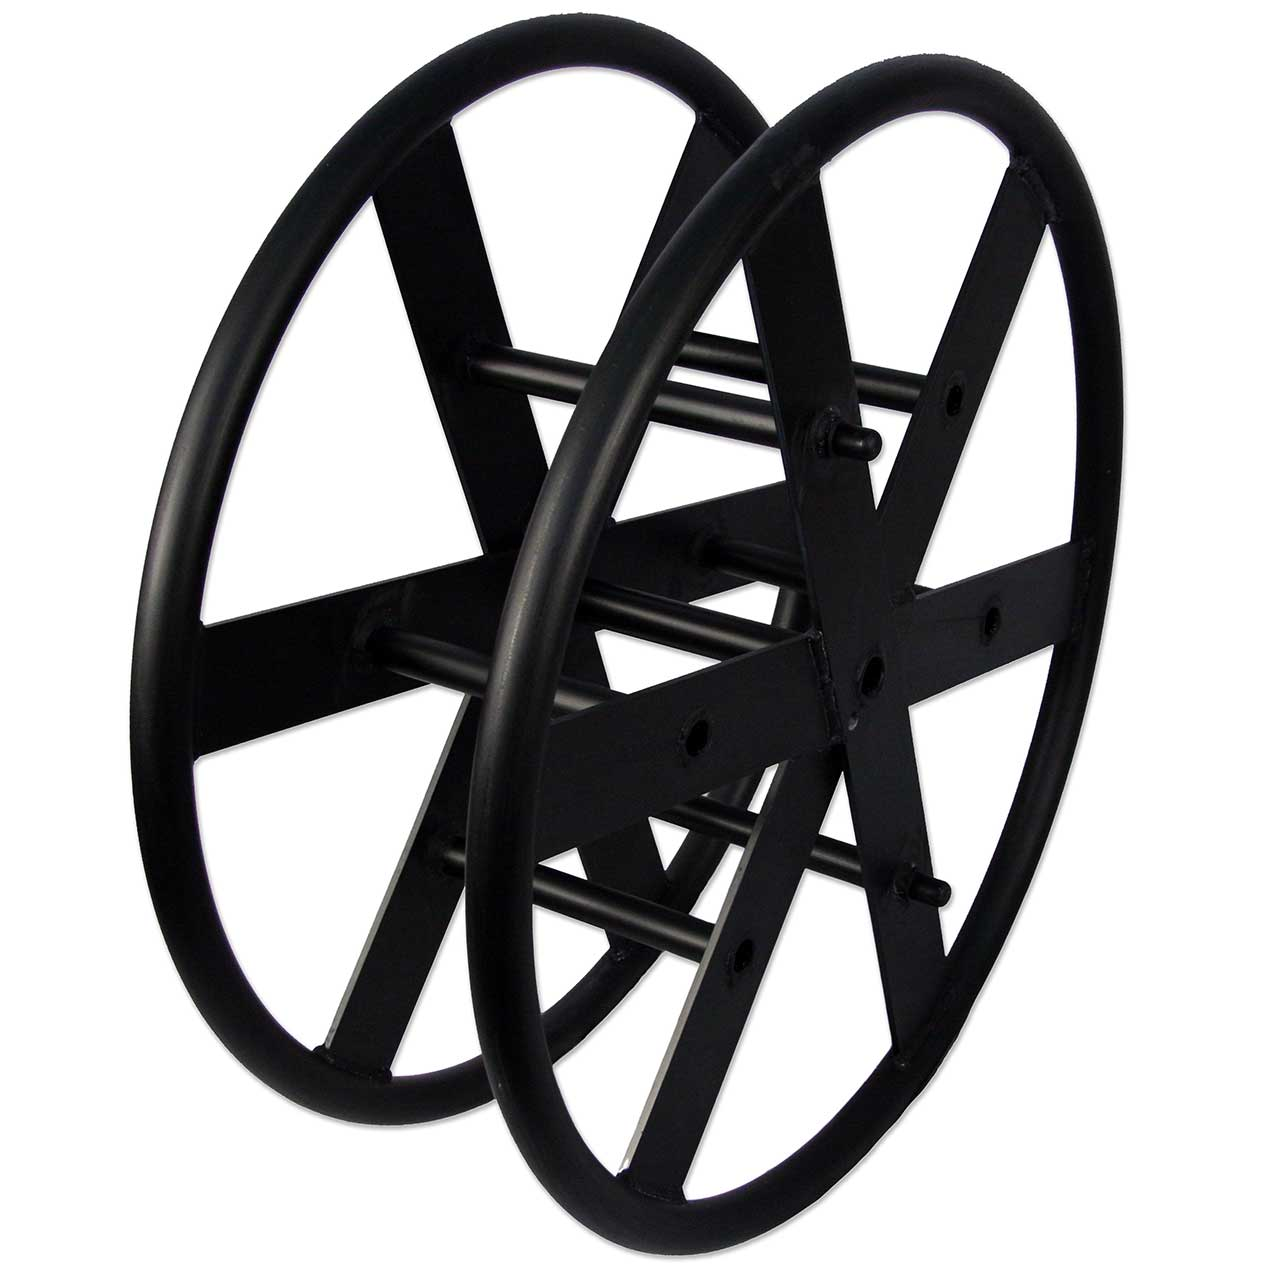 Cable Reel (Small)